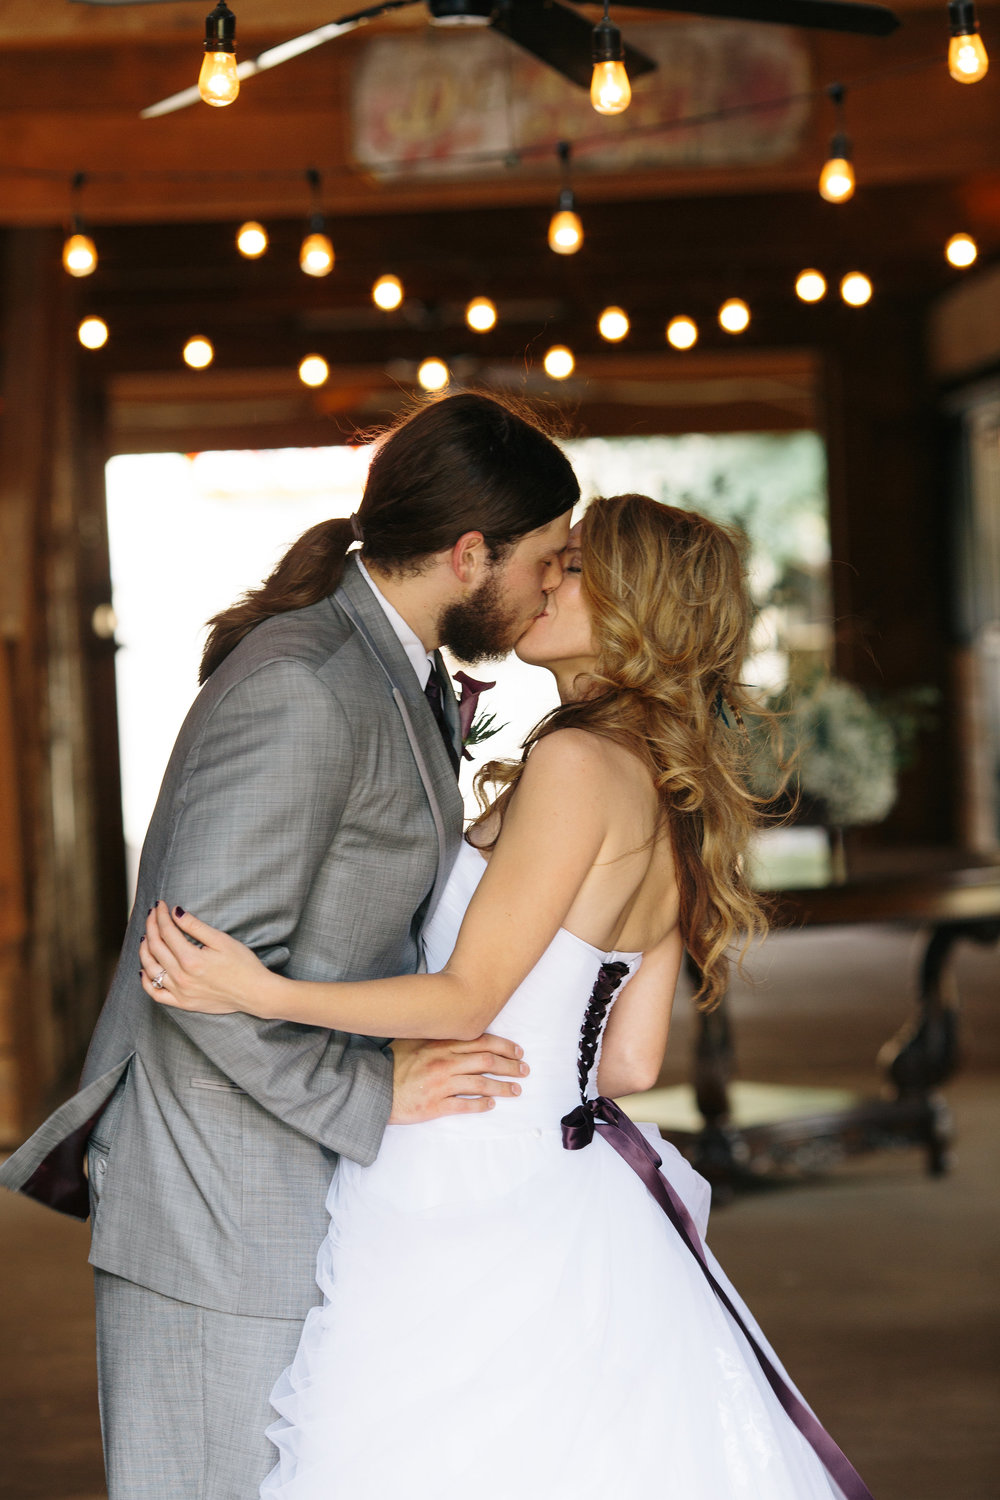 Bride & Groom Kissing in Barn